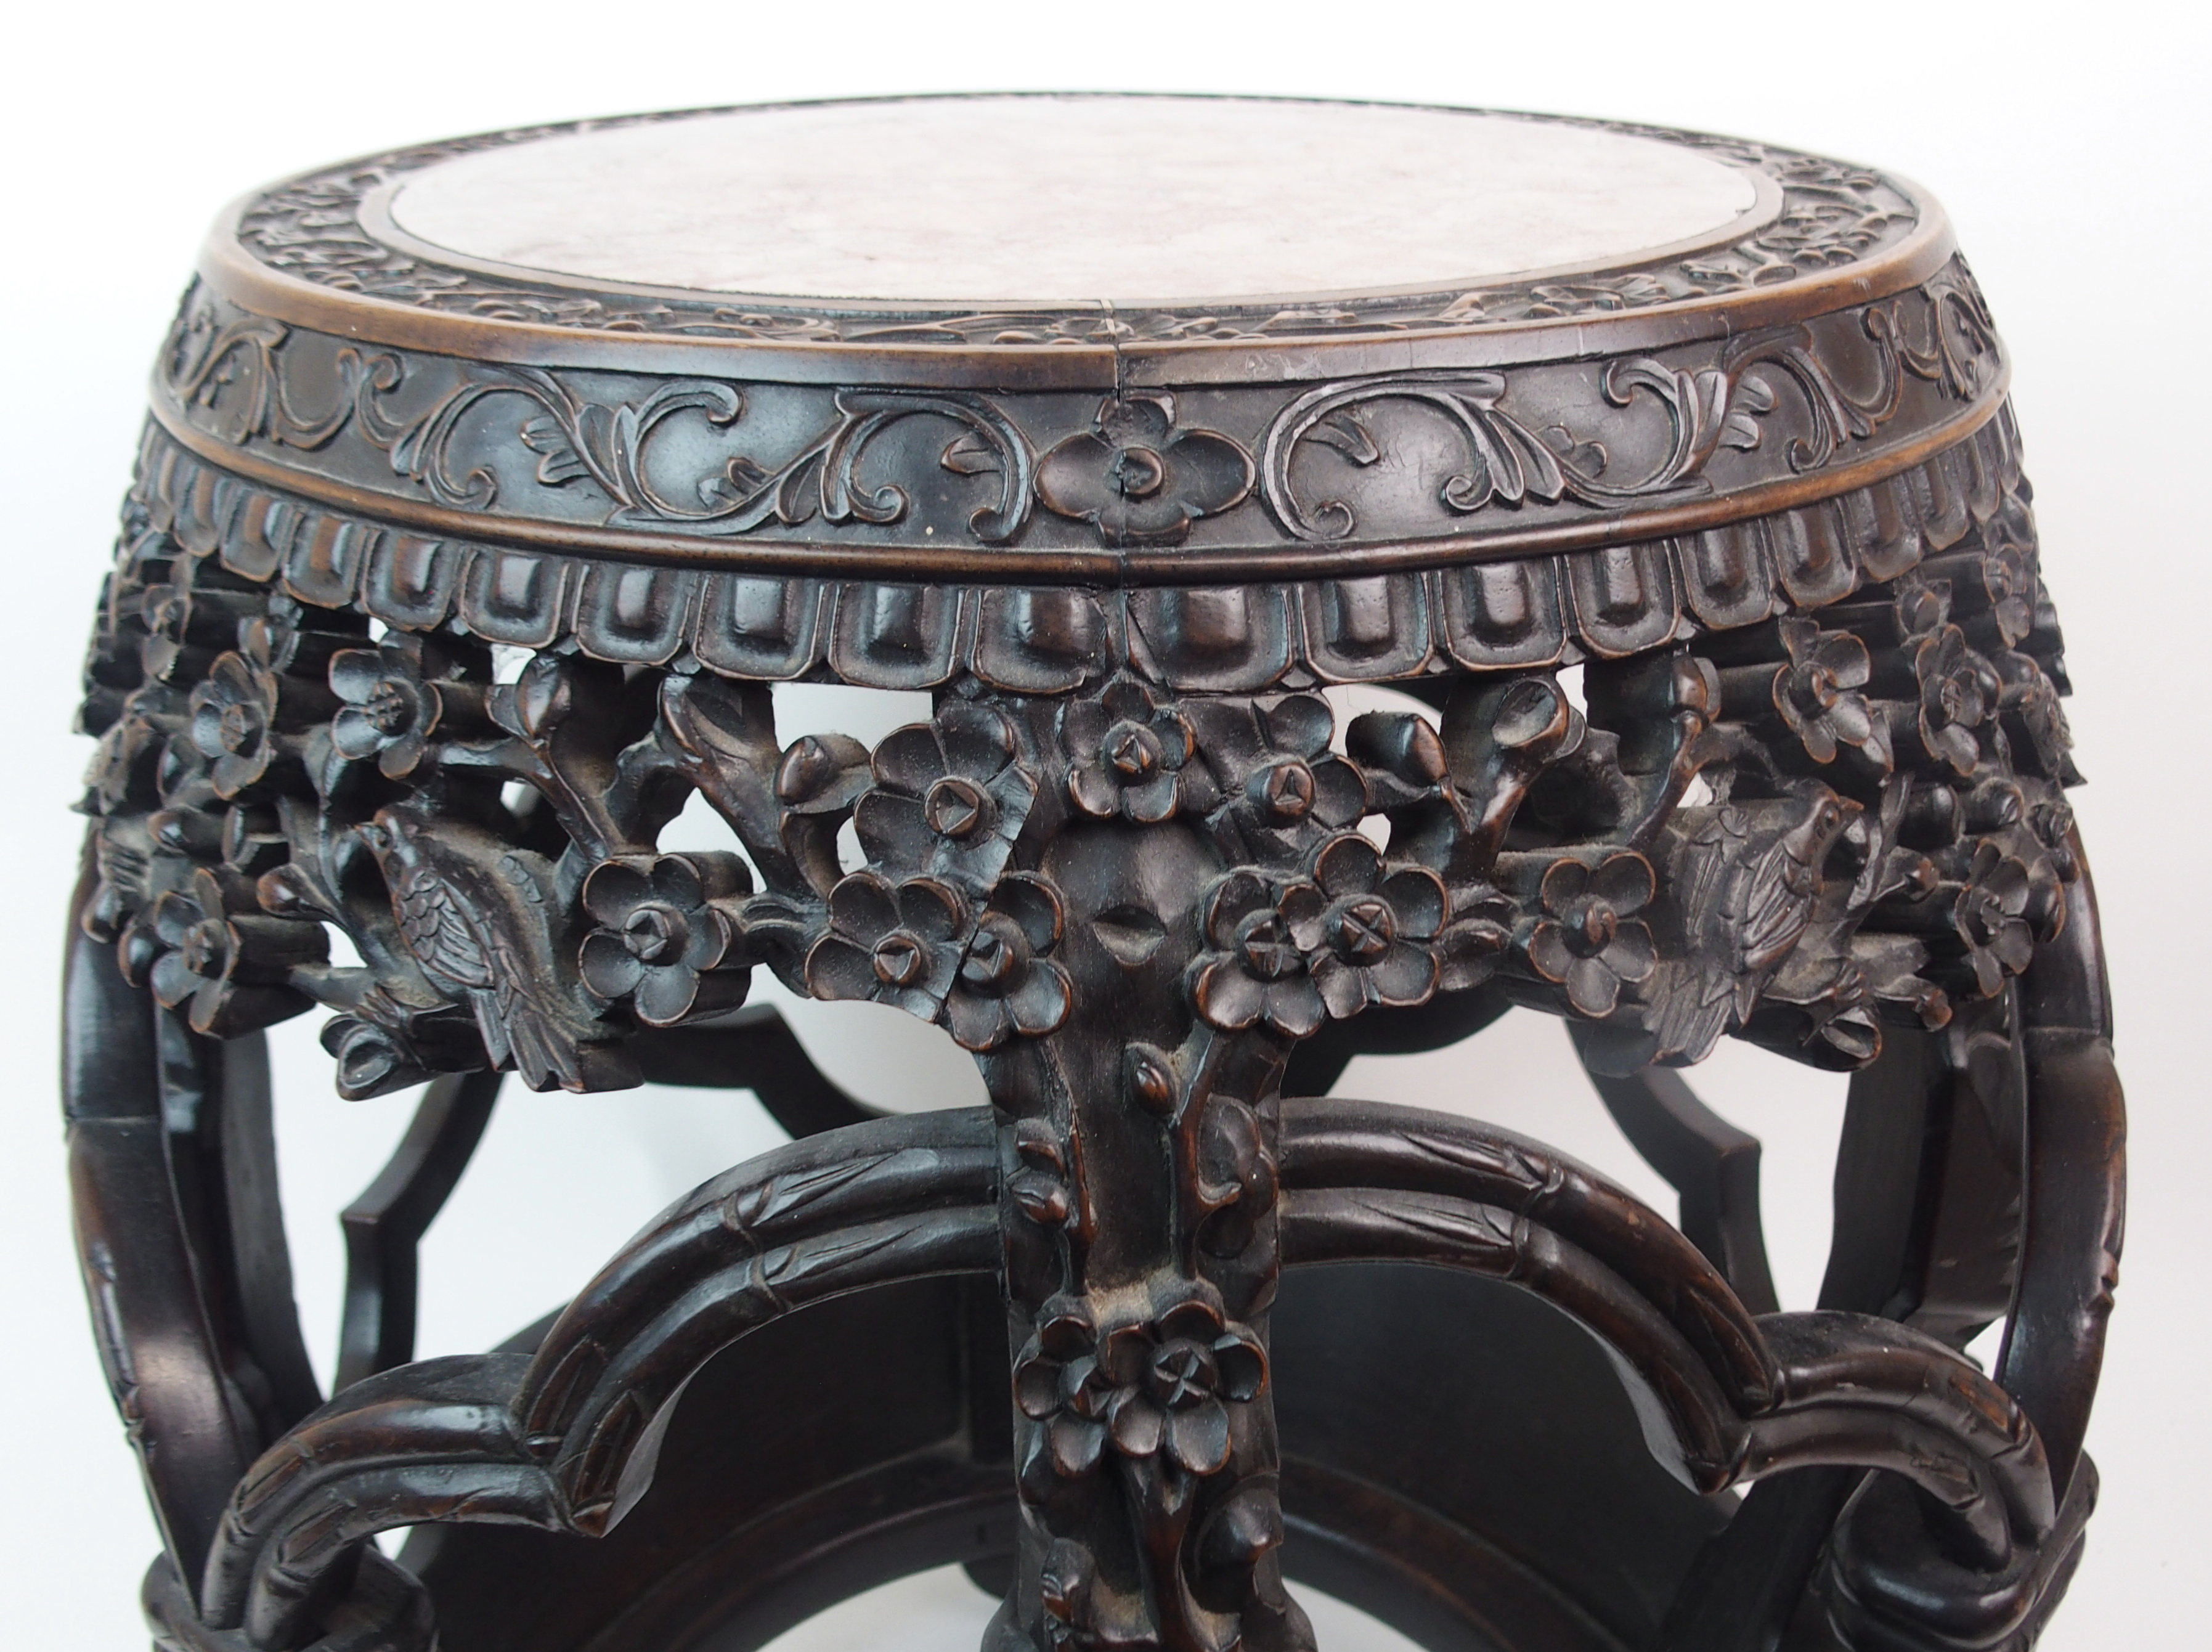 Lot 52 - A CHINESE ROSEWOOD BARREL SHAPED CONSERVATORY SEAT the marble inset top within carved floral spray